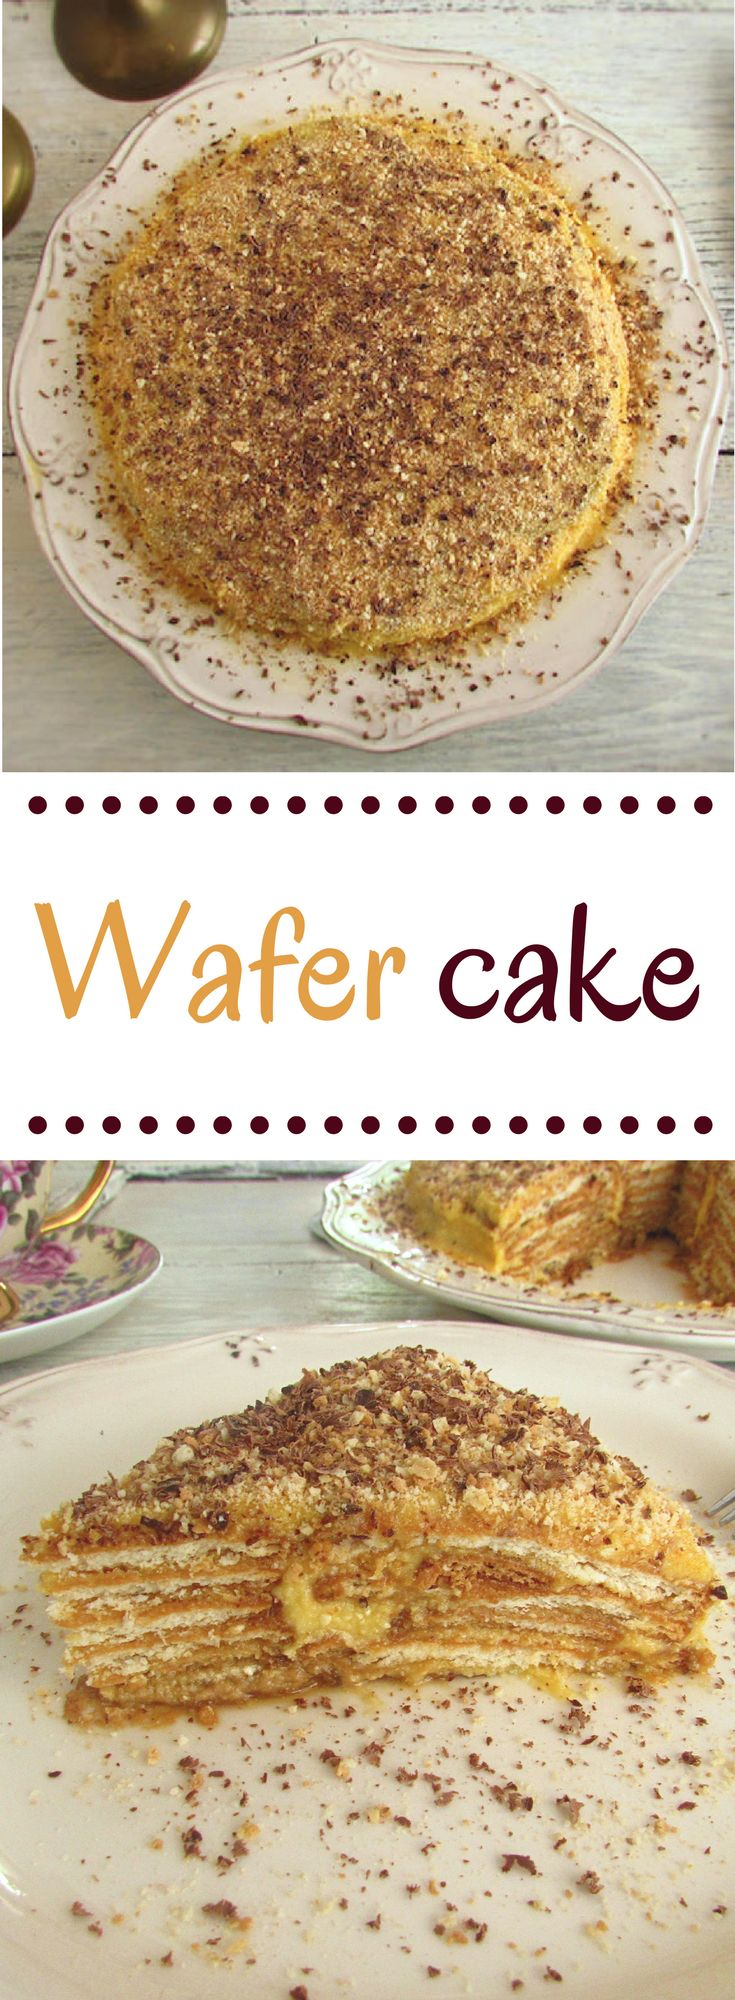 Wafer cake | Food From Portugal. Delicious wafer cake, topped with a cream prepared with egg yolks, sugar and margarine, sprinkled with ground biscuit and grated chocolate. #wafer #recipe #cake